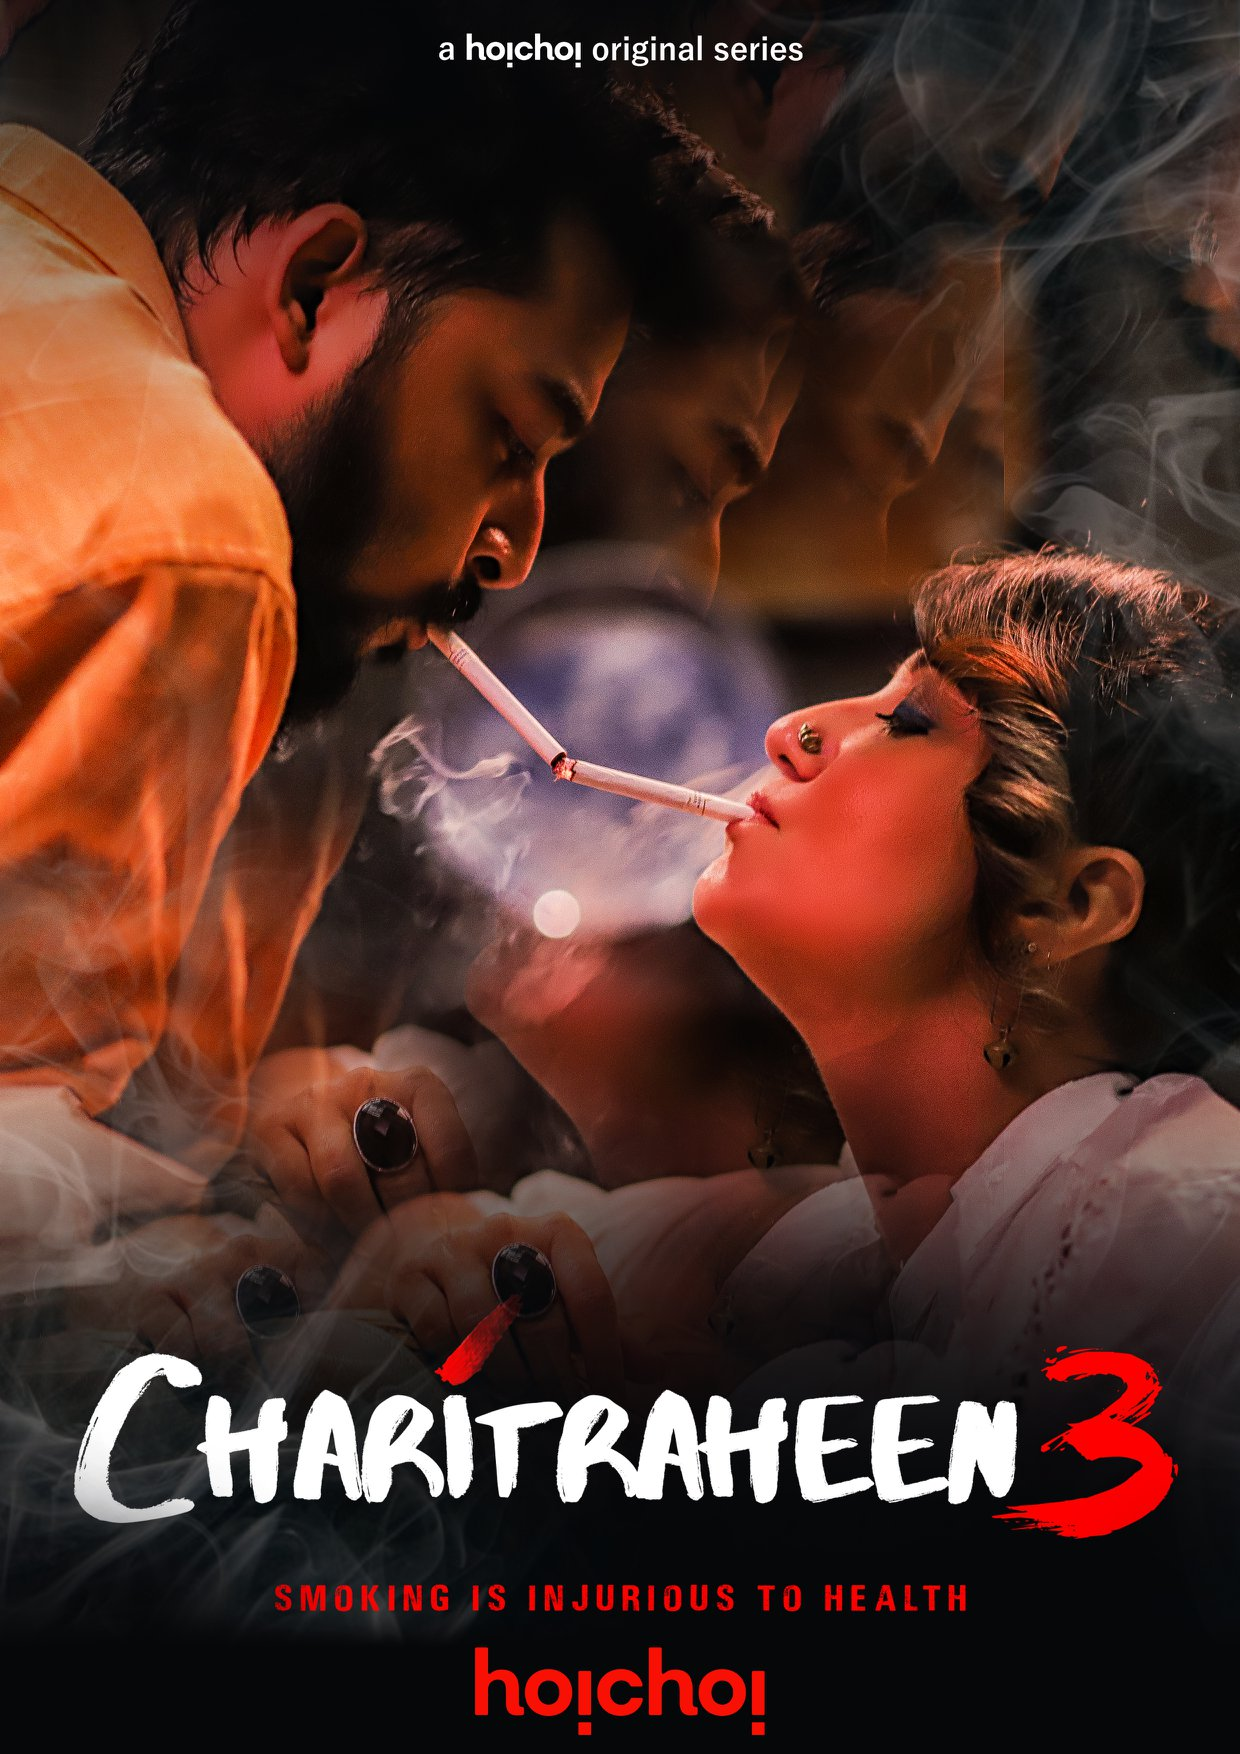 Charitraheen 3 2020 Bengali Hoichoi Original Web Series Official Trailer 720p HDRip Download